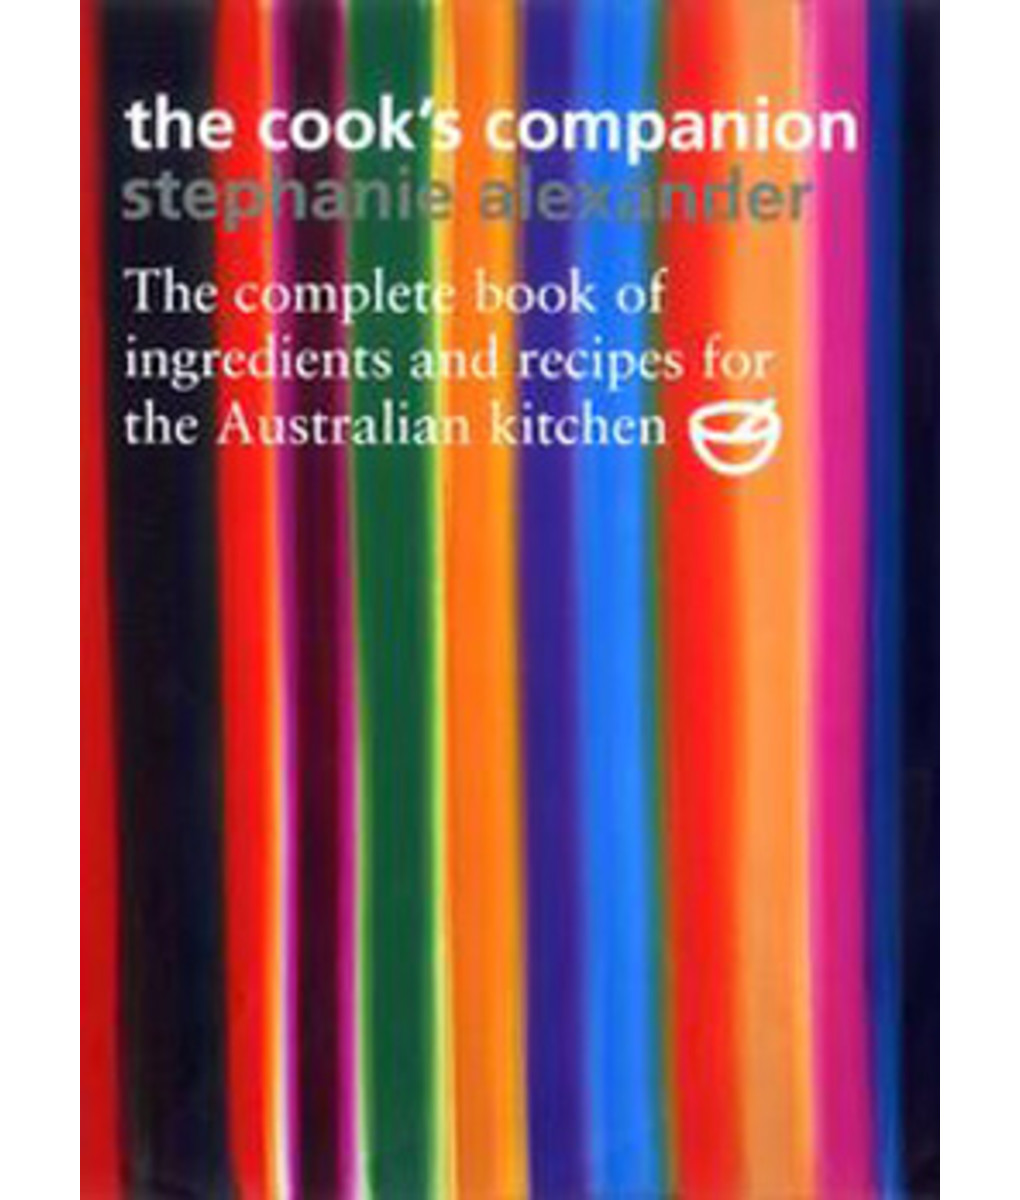 The Cook's Companion by Stephanie Alexander